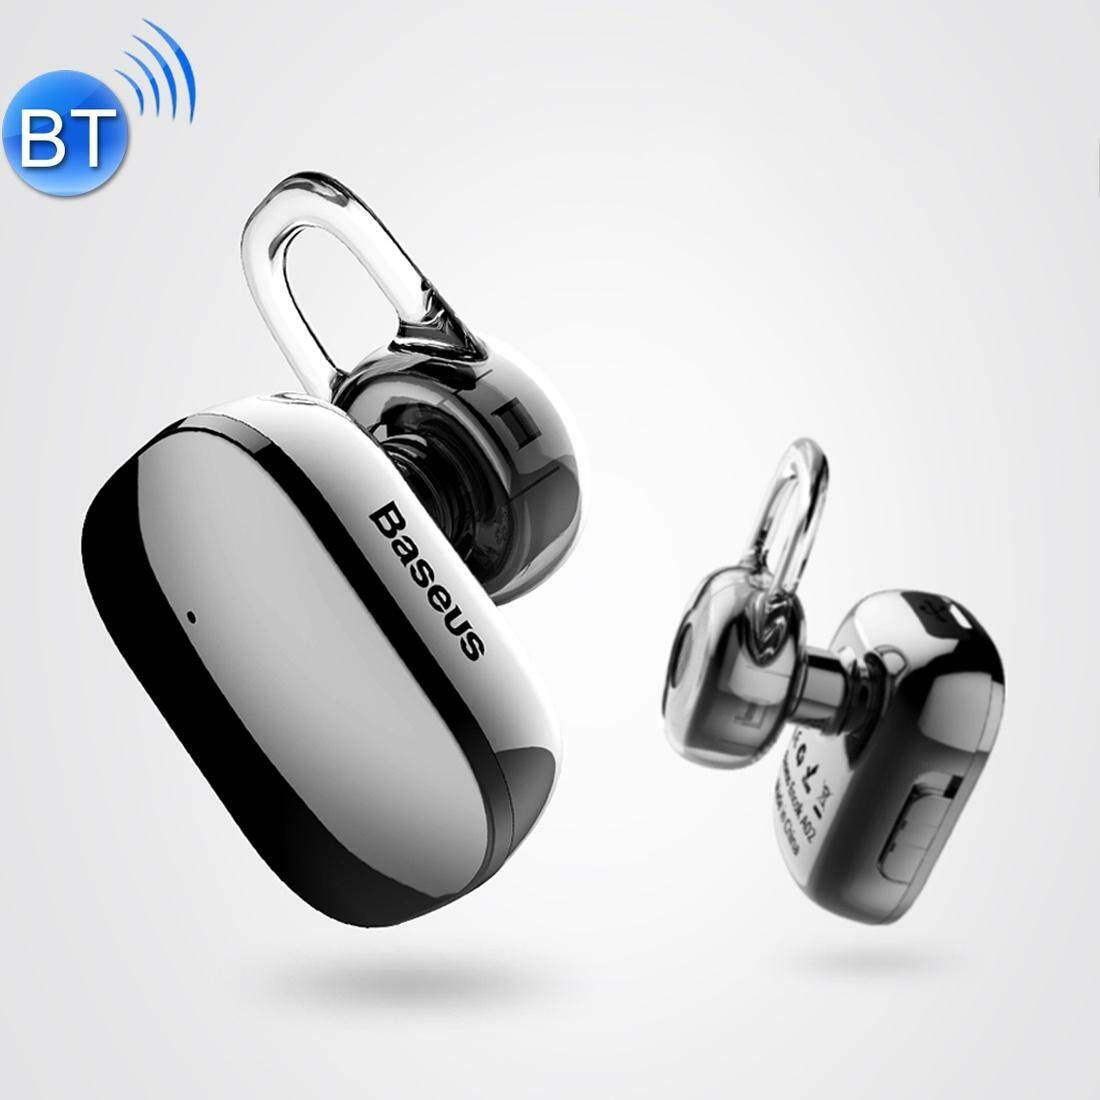 Baseus Encok A02 One-sided Touch Control Wireless Bluetooth In-Ear Plating Earphone, Support Answer / Hang Up Calls, For iPhone, Samsung, Huawei, Xiaomi, HTC, Sony and Other Smartphones(Tarnish)